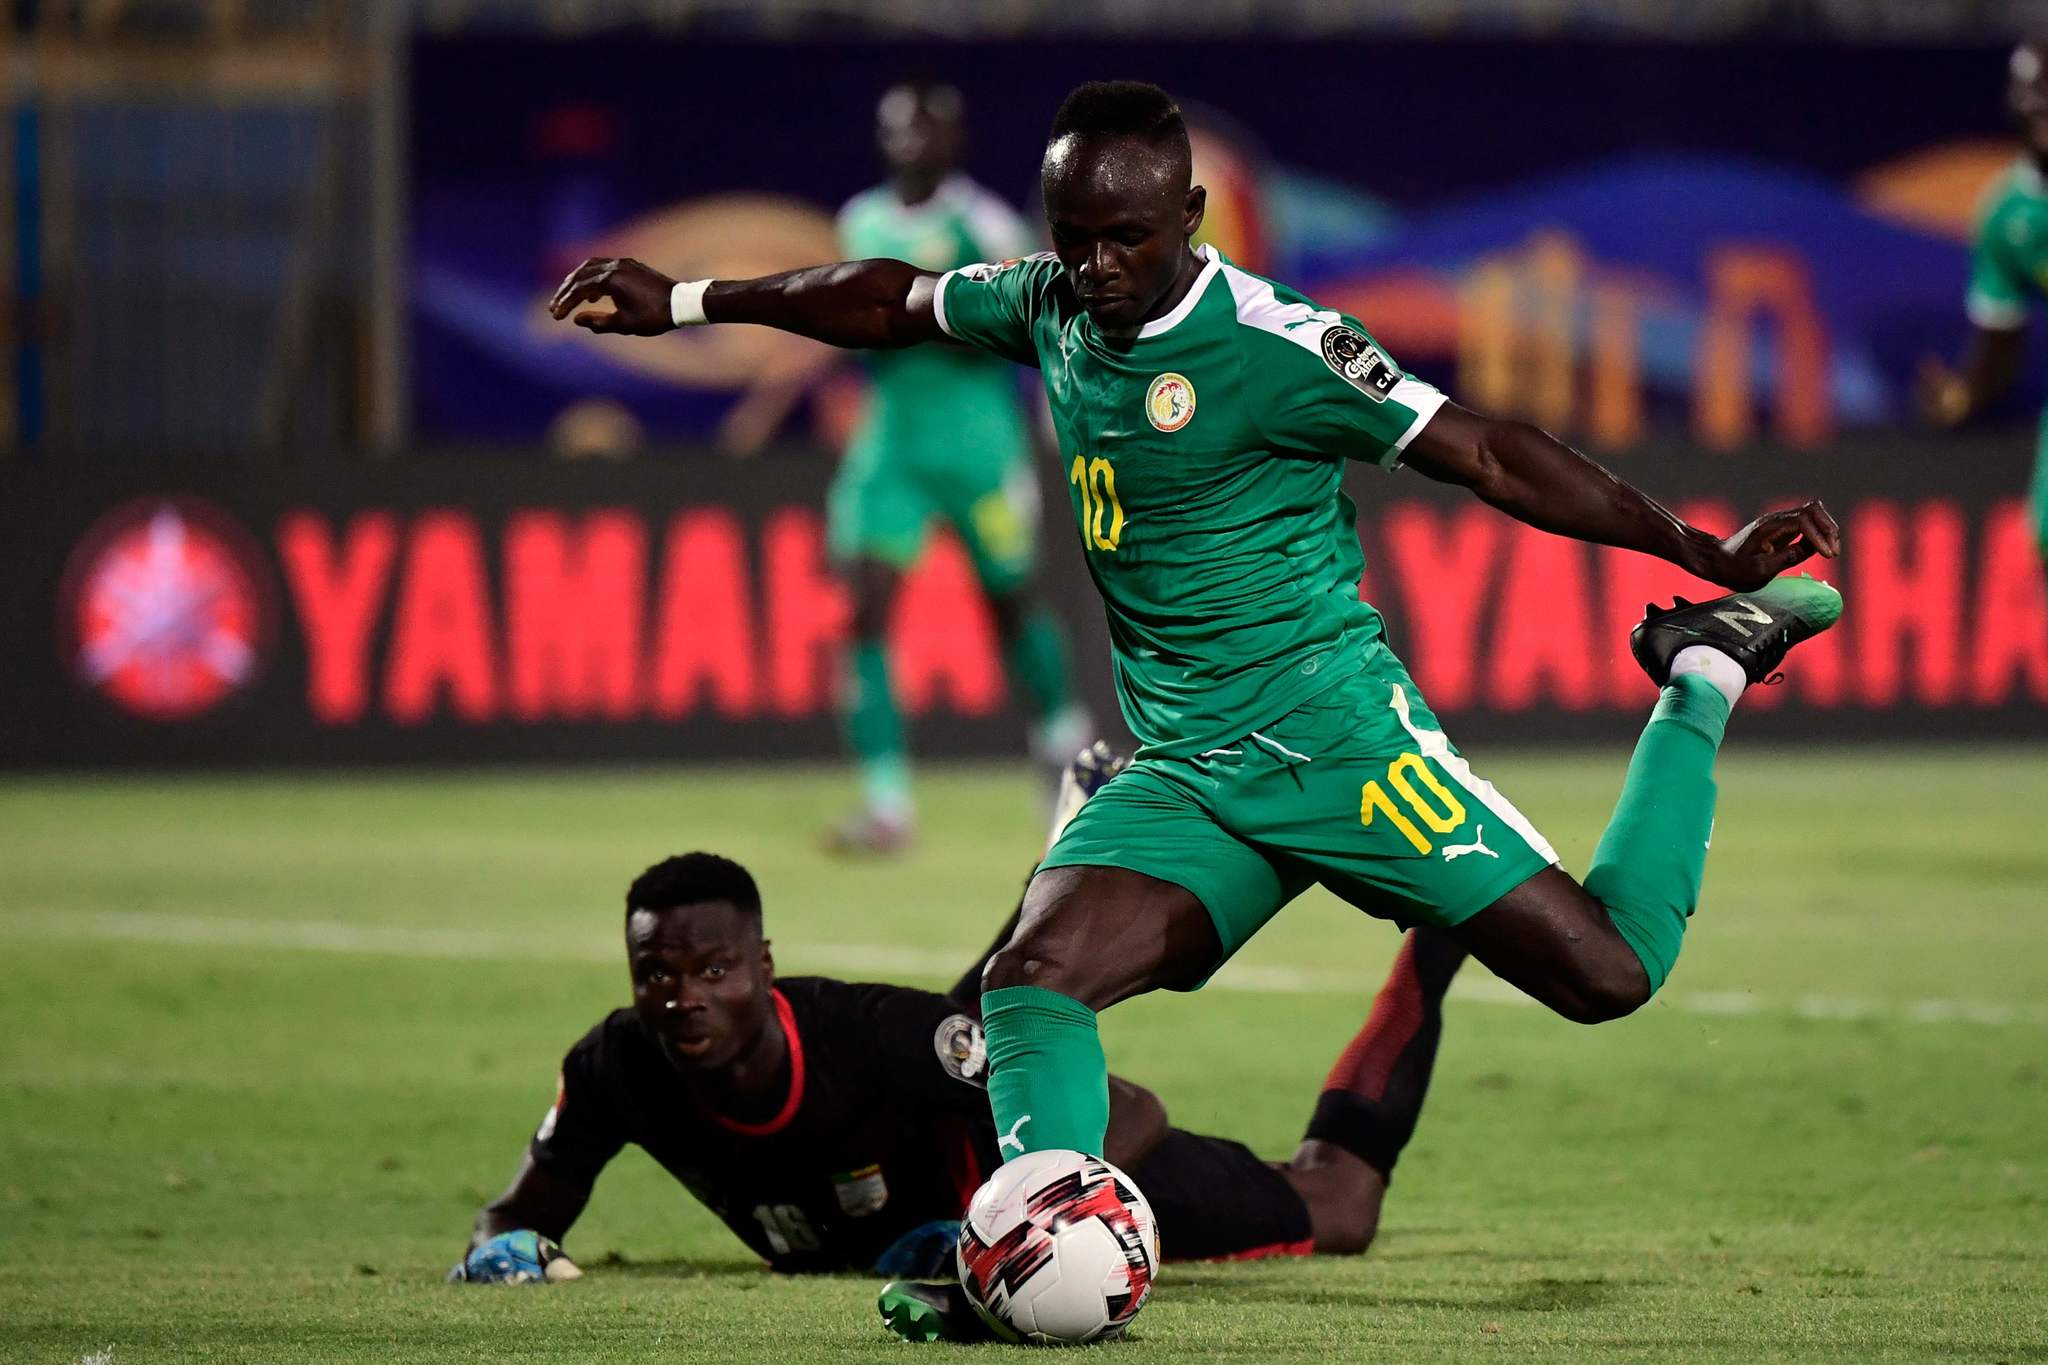 lt;HIT gt;Senegal lt;/HIT gt;s forward Sadio lt;HIT gt;Mane lt;/HIT gt; (R) scores, a goal later canceled, past Benins goalkeeper Saturnin Allagbe during the 2019 Africa Cup of Nations (CAN) quarter final football match between lt;HIT gt;Senegal lt;/HIT gt; and Benin at the 30 June stadium in Cairo on July 9, 2019. (Photo by JAVIER SORIANO / AFP)